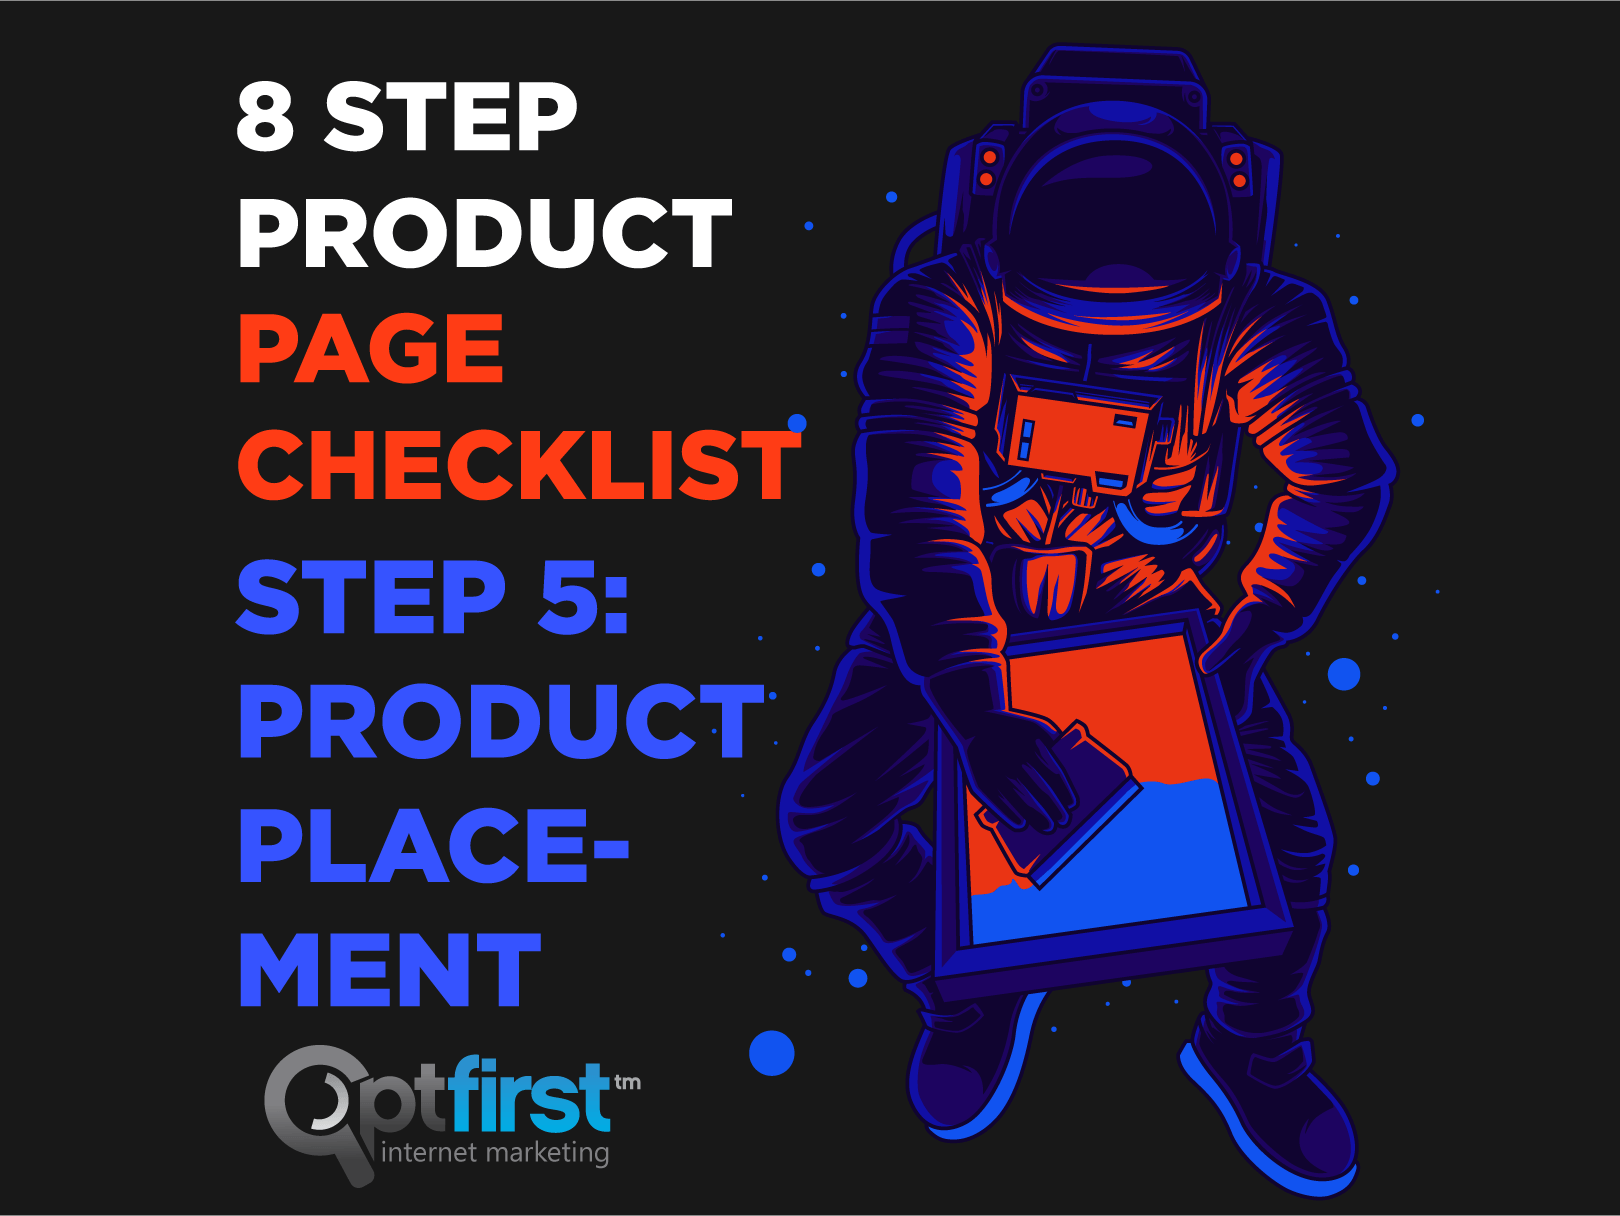 8 Step Product Page Checklist – Step 5: Product Placement